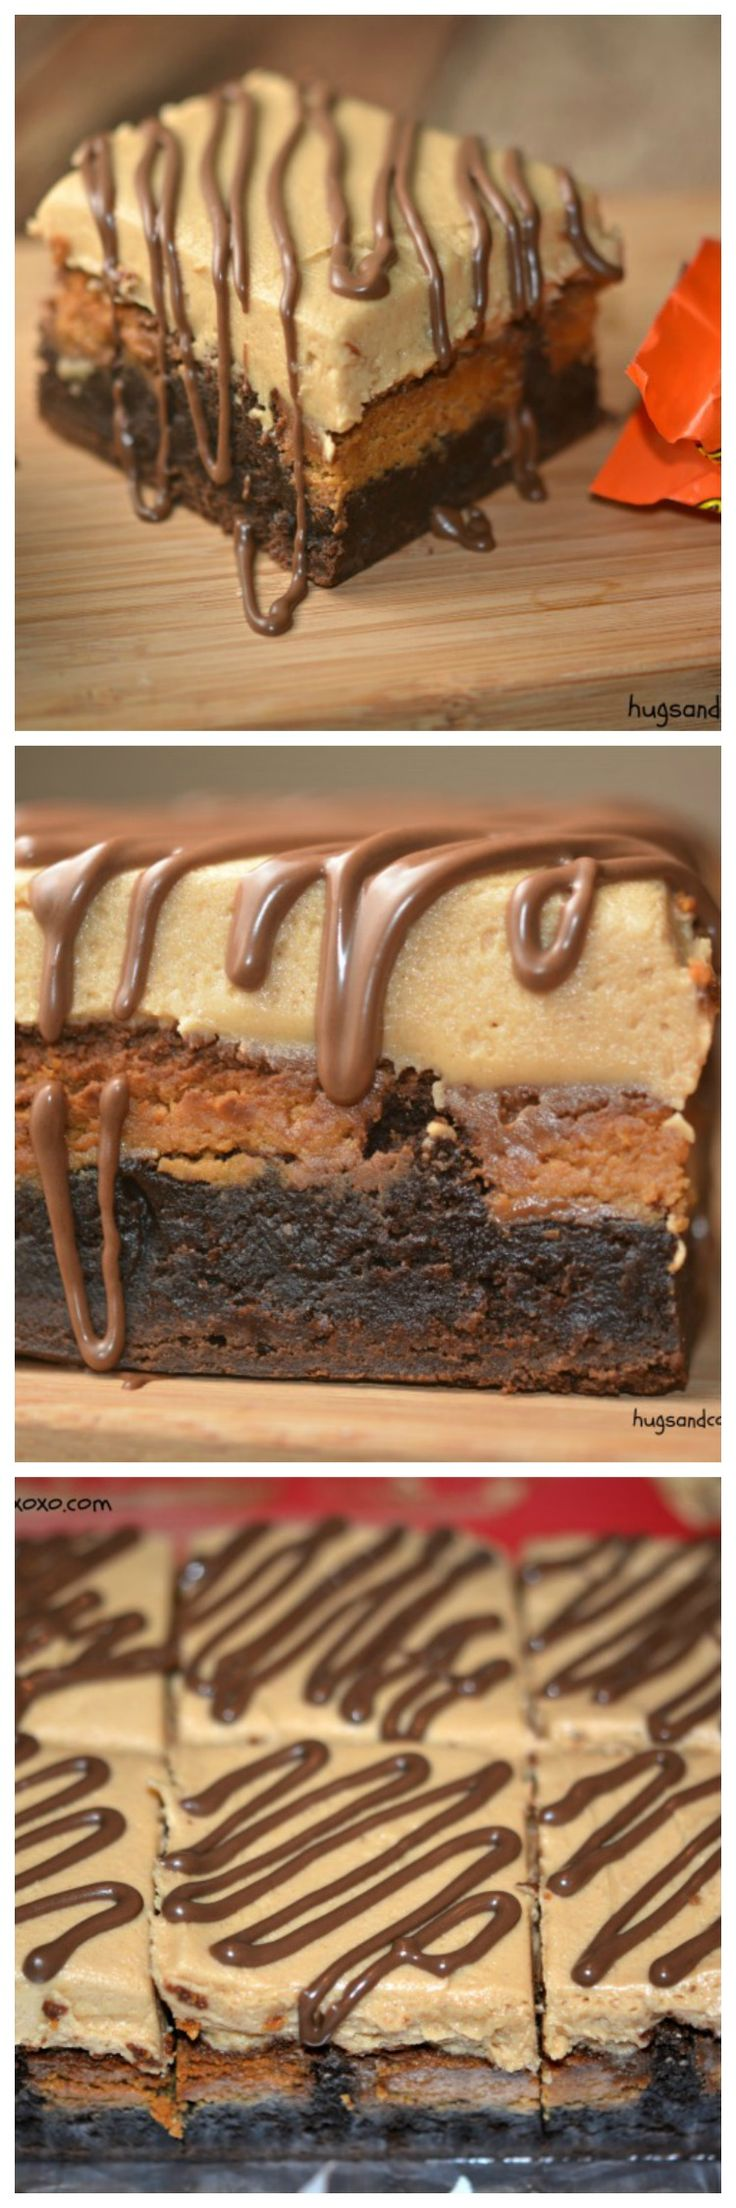 Reese's Stuffed brownies with Peanut Butter frosting.